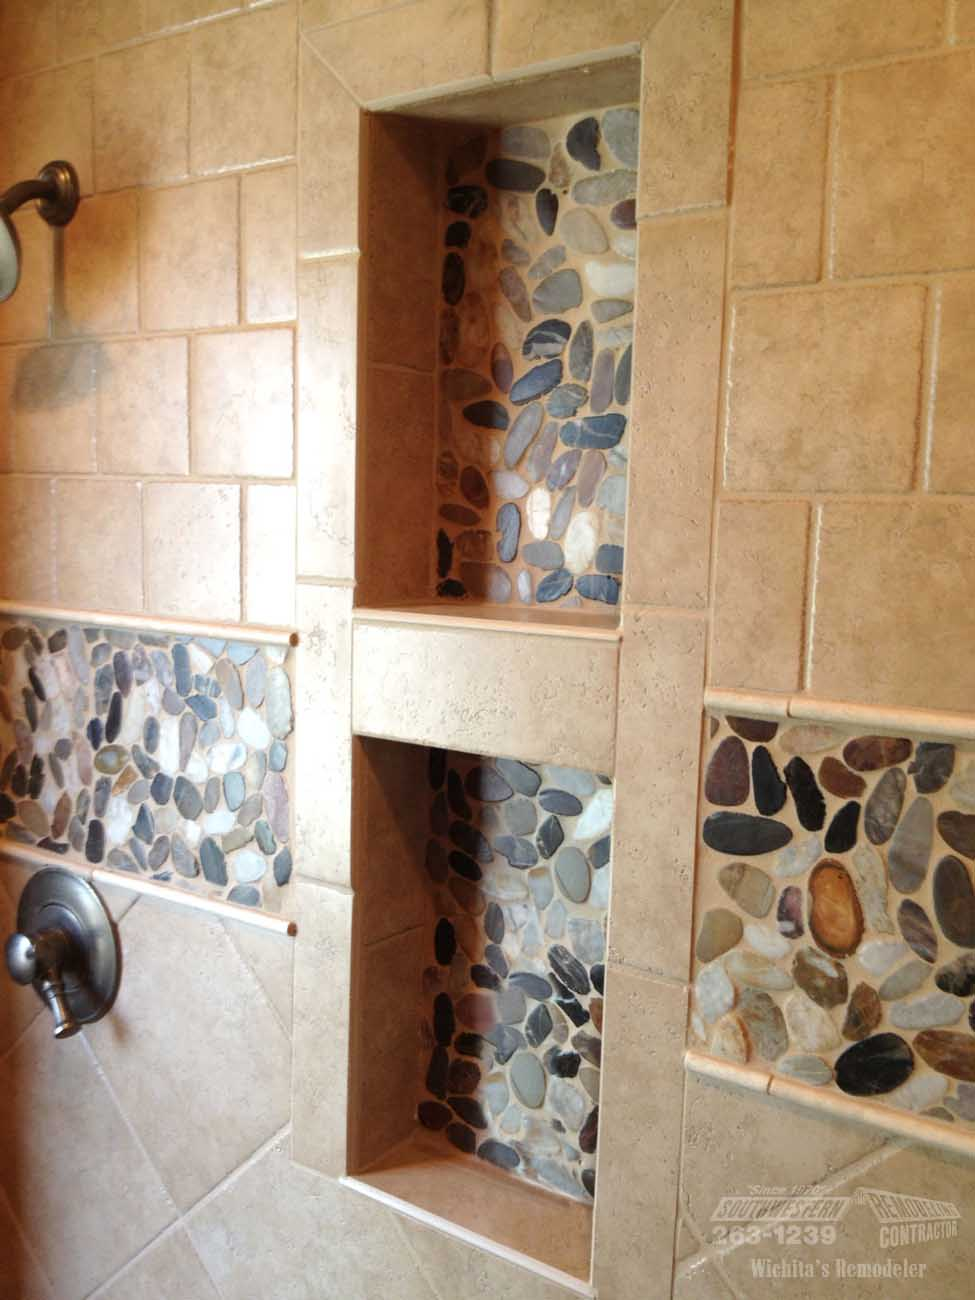 Bathroom Remodeling Wichita Ks Inspiration Bathroom Remodeling  Southwestern Remodeling  Wichita Inspiration Design